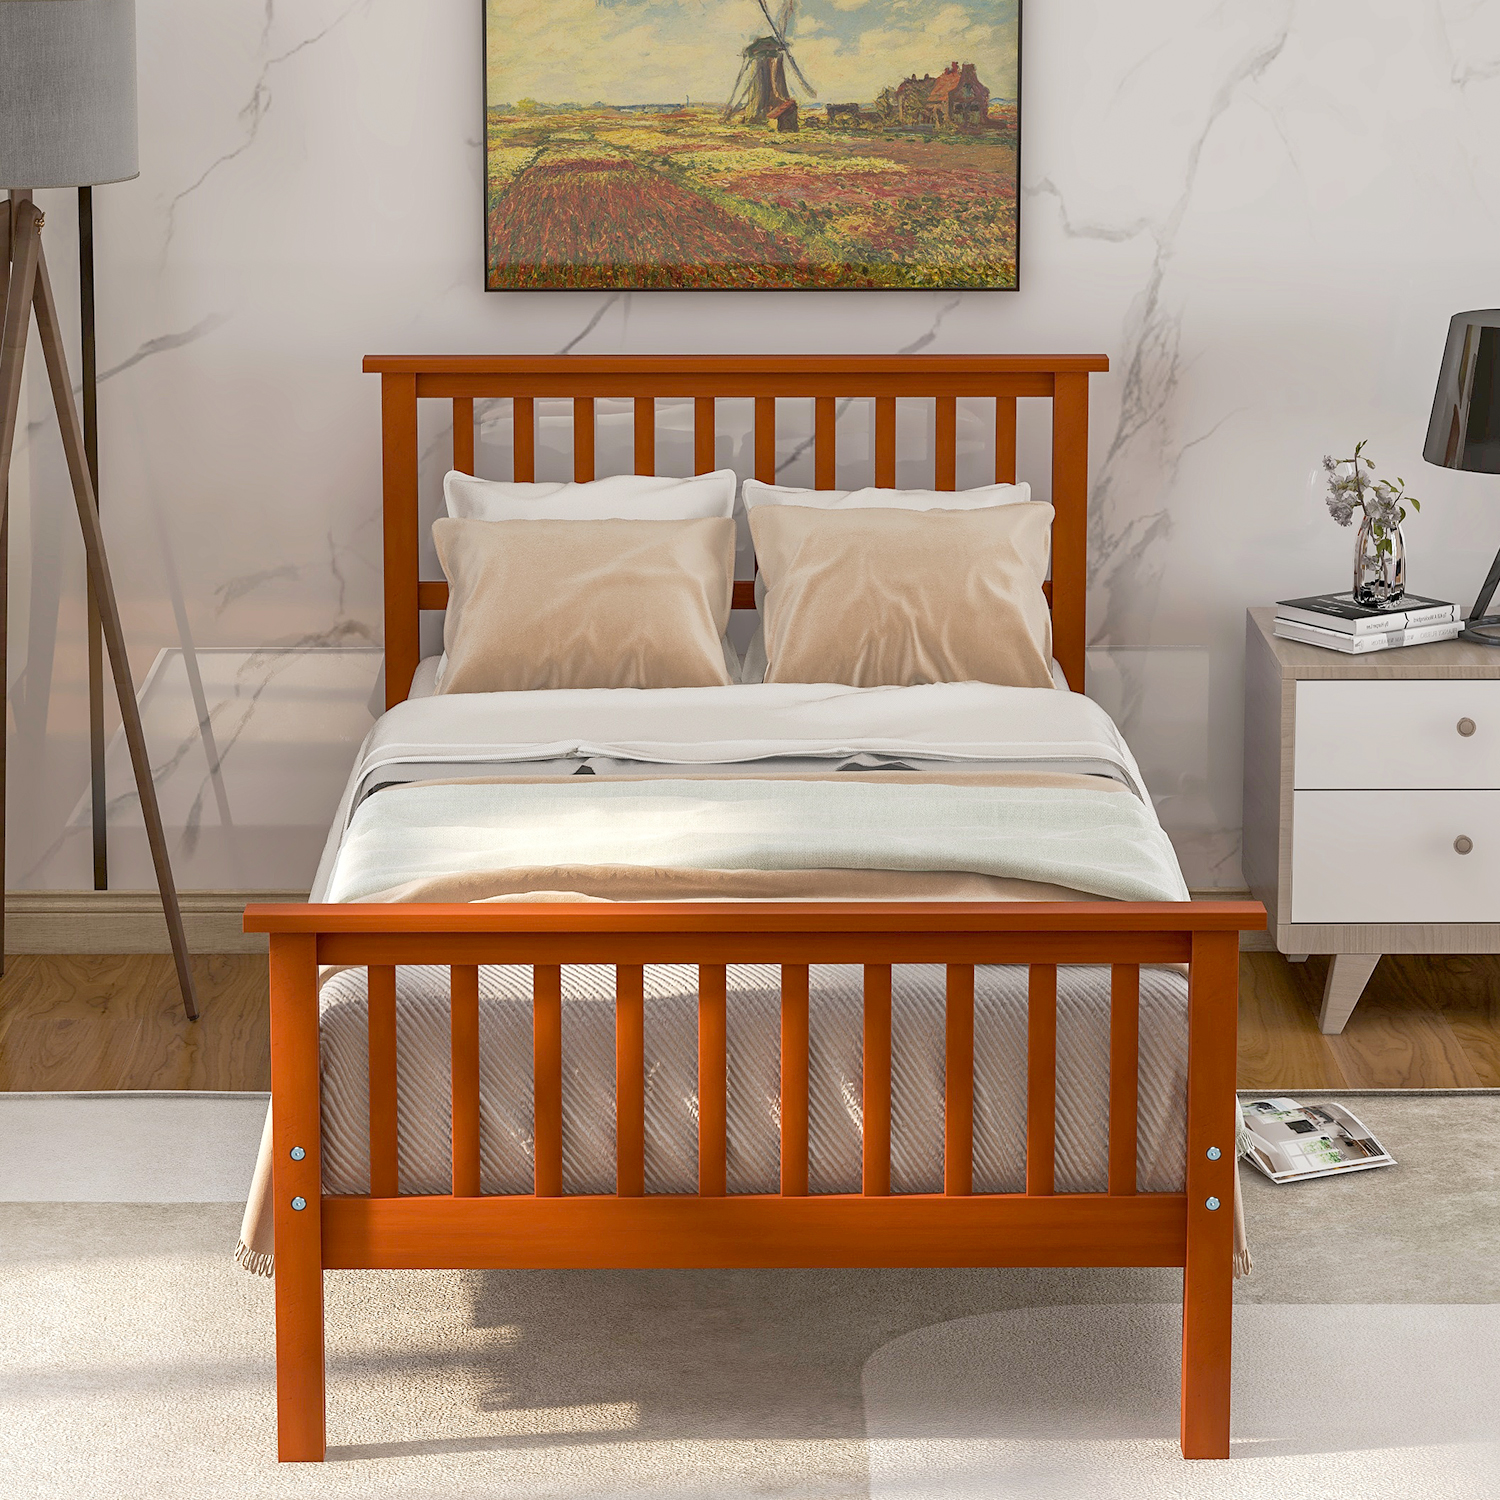 Twin Bed Frame With Headboard Solid Wood Twin Platform Bed Frame W Strong Wooden Slat No Box Spring Needed Great For Boys Girls Kids Teens And Adults Modern Bedroom Furniture Oak Color W7374